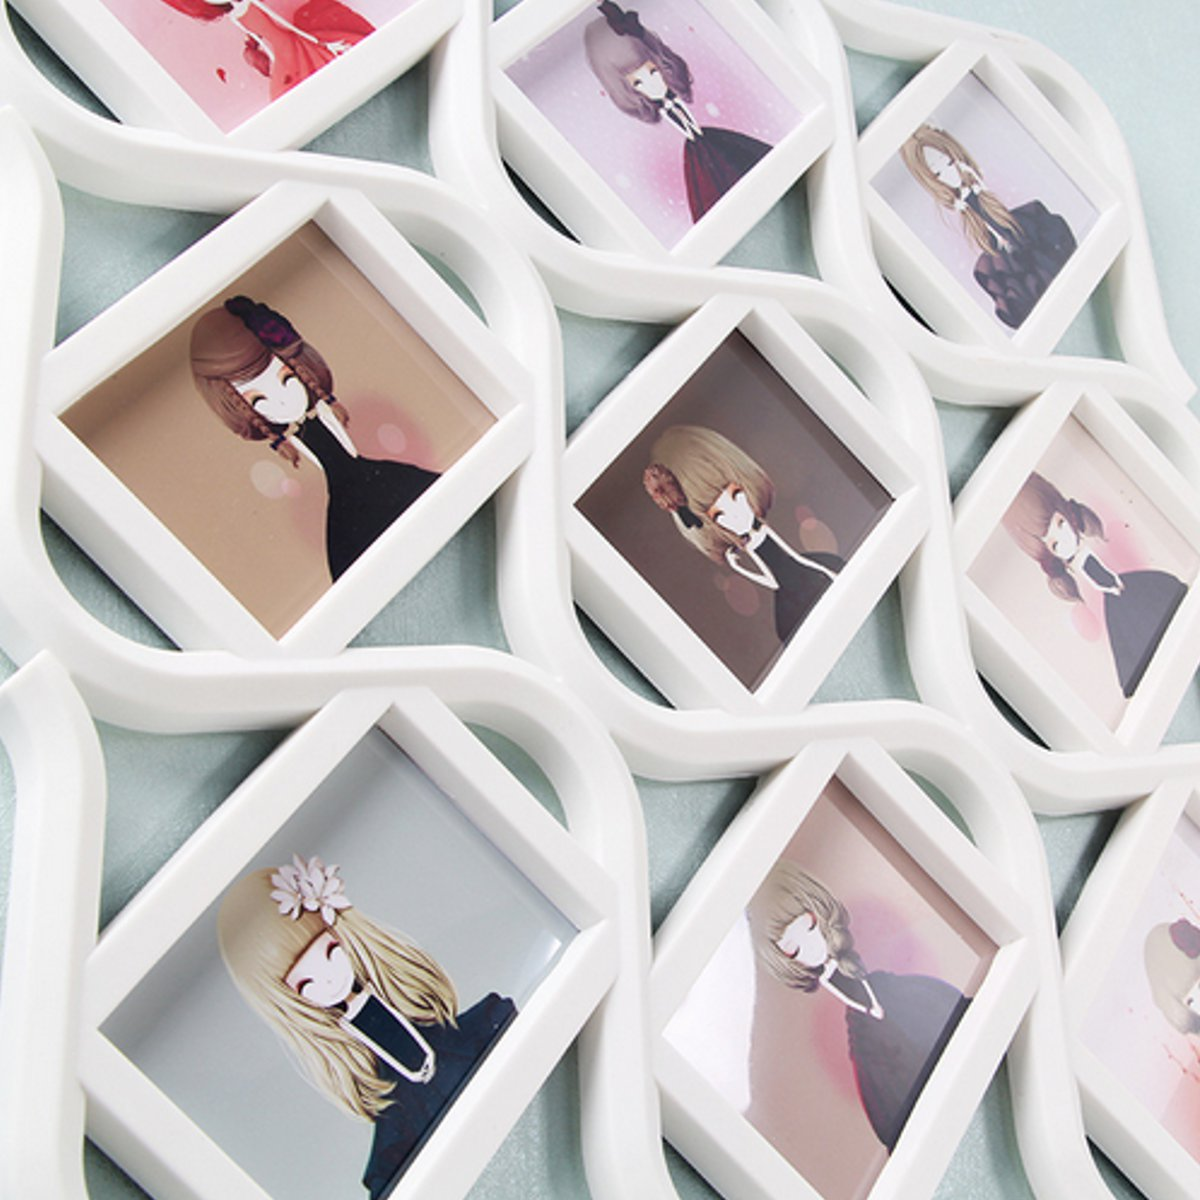 Chinese Knot 9 Image Family Photo Frame Collage Picture Wall Hanging Decor Wedding Gift